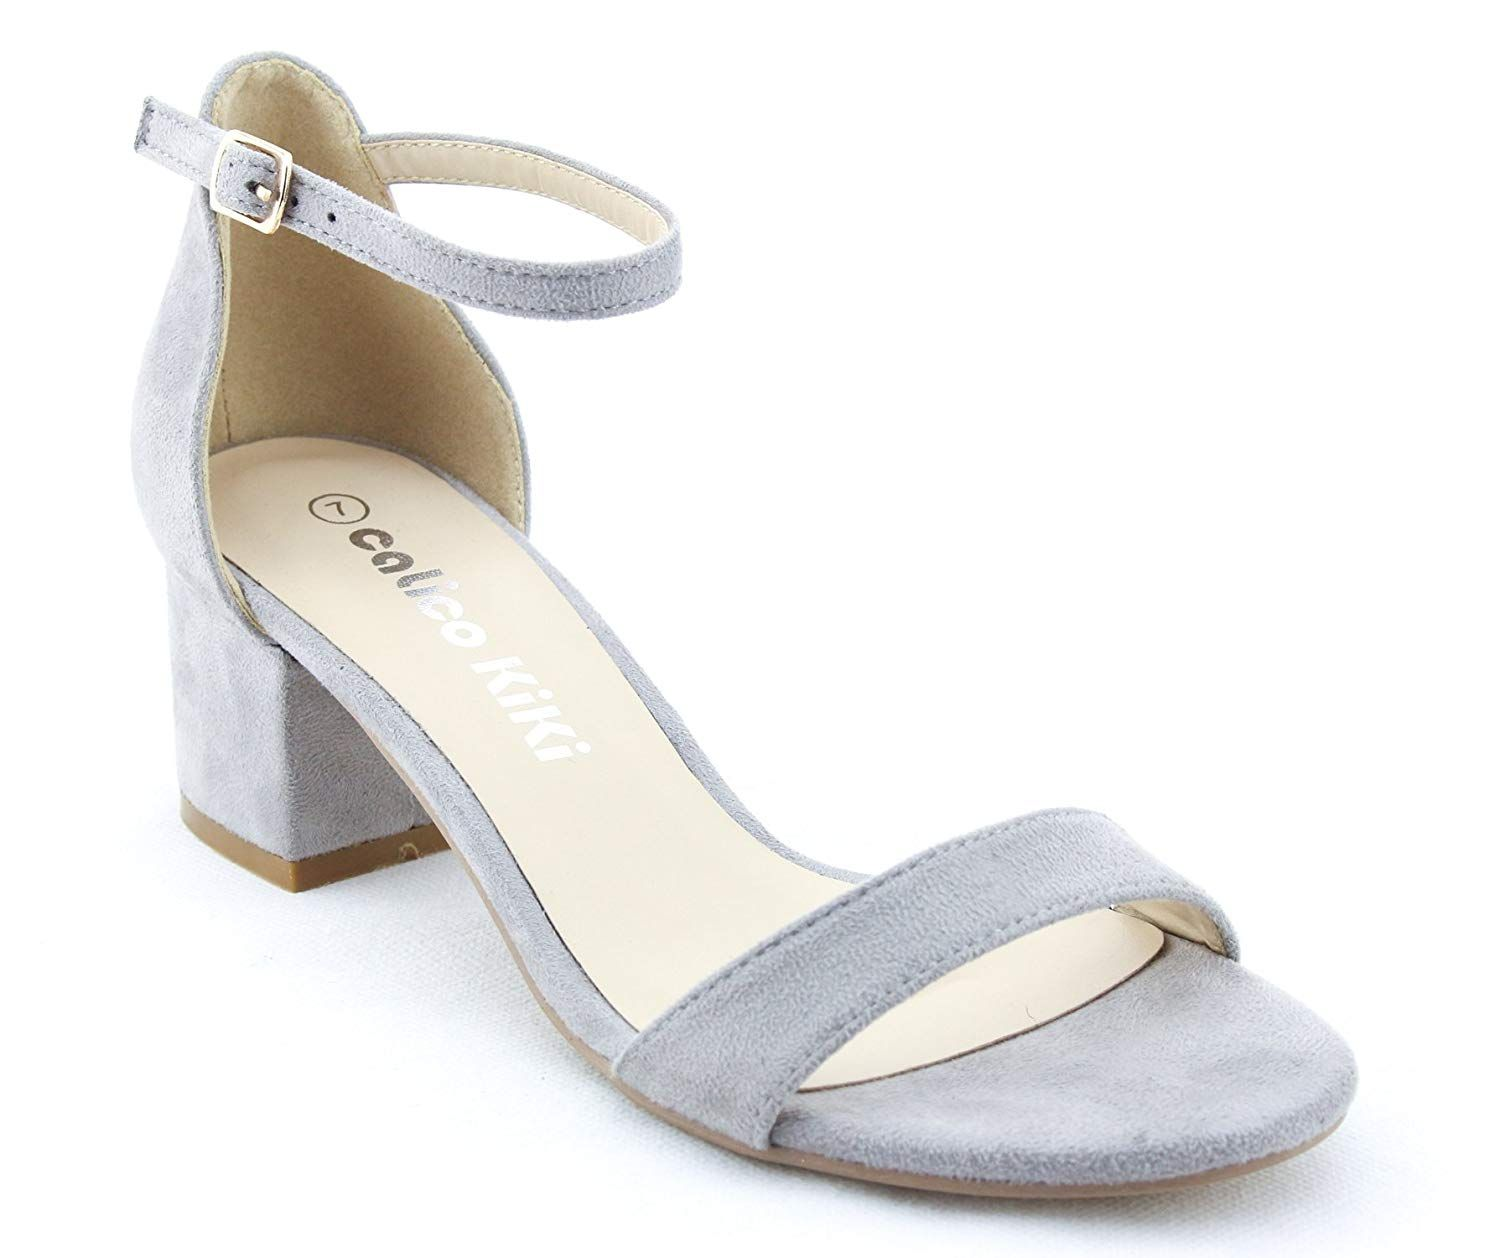 553beae12b CALICO KIKI Women's Buckle Ankle Strap Low Block Heel Open Toe Heeled  Sandals -- Nice of your presence to drop by to visit the picture.